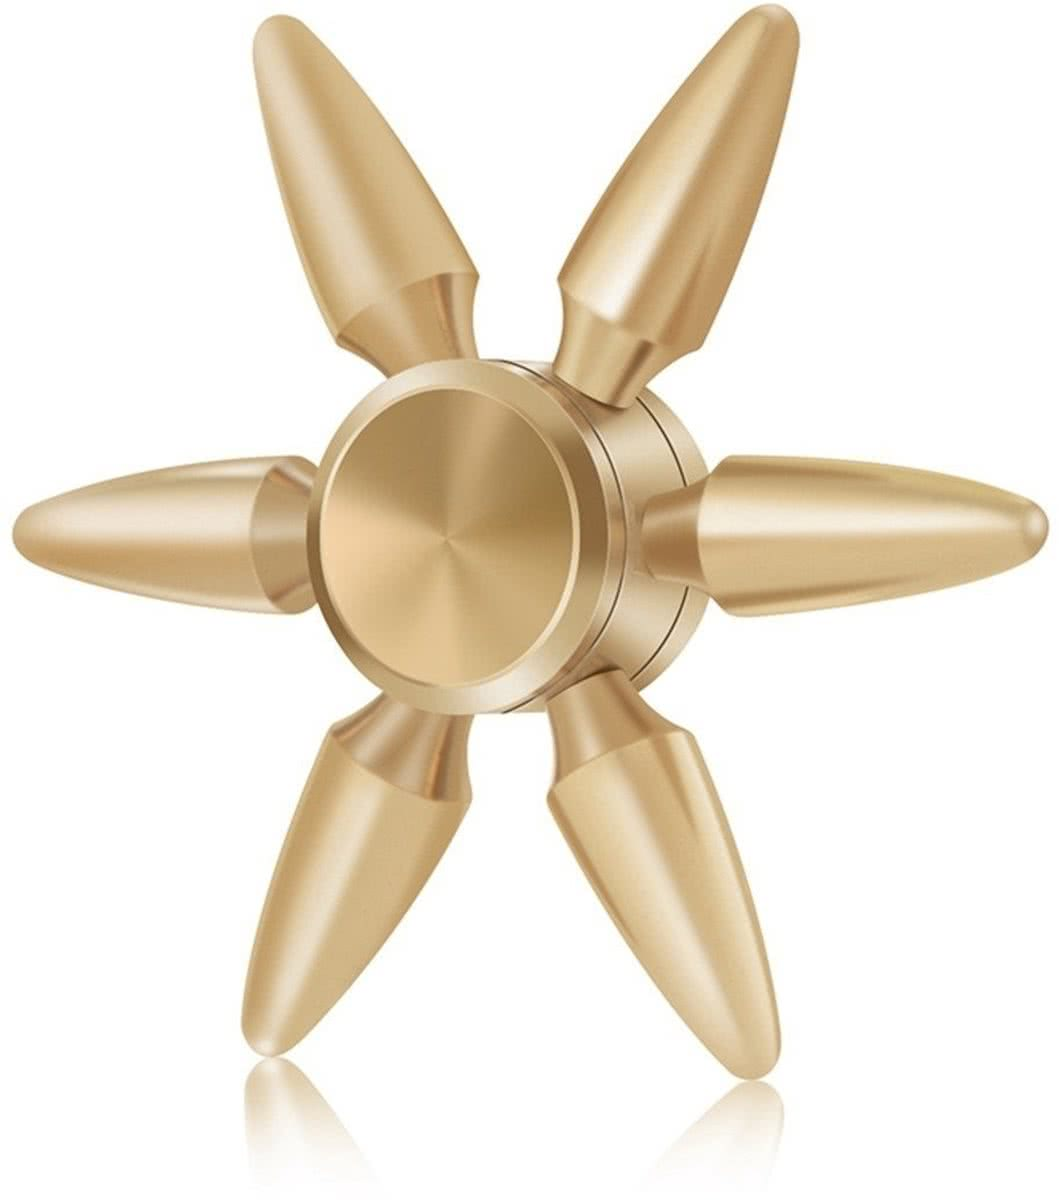 Spinner Toy Stress rooducer Anti-Anxiety Toy voor Children en Adults,  3 Minutes Rotation Time, Steel R188 Beads Bearing + Copper materiaal, Six Bullet Leaves